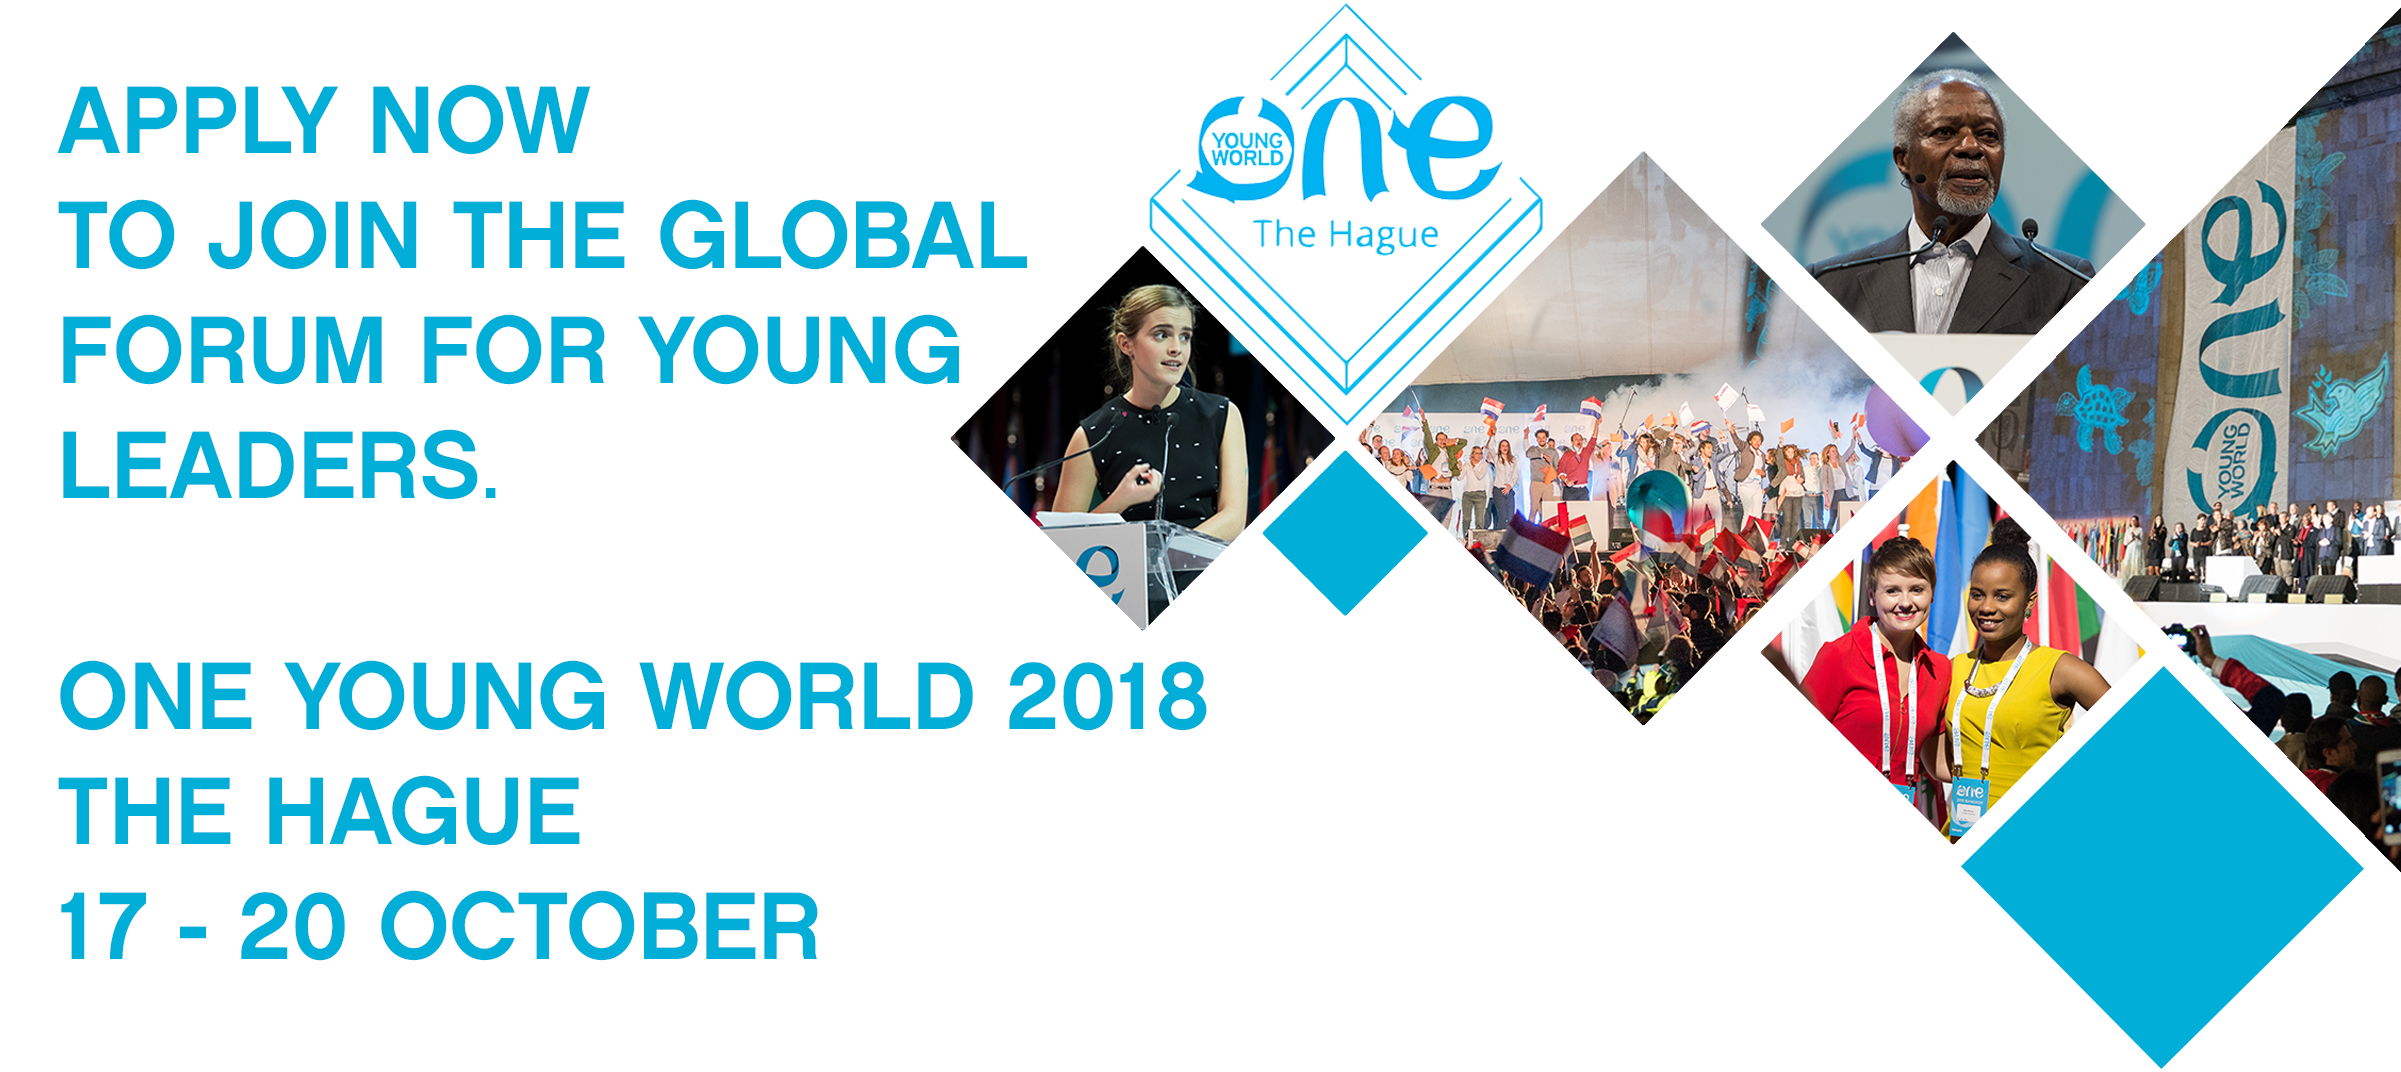 https://i0.wp.com/jobs.paruto.io/wp-content/uploads/2018/01/All-Bar-None-Scholarship-to-attend-One-Young-World-Summit-2018.png?fit=2401%2C1072&ssl=1